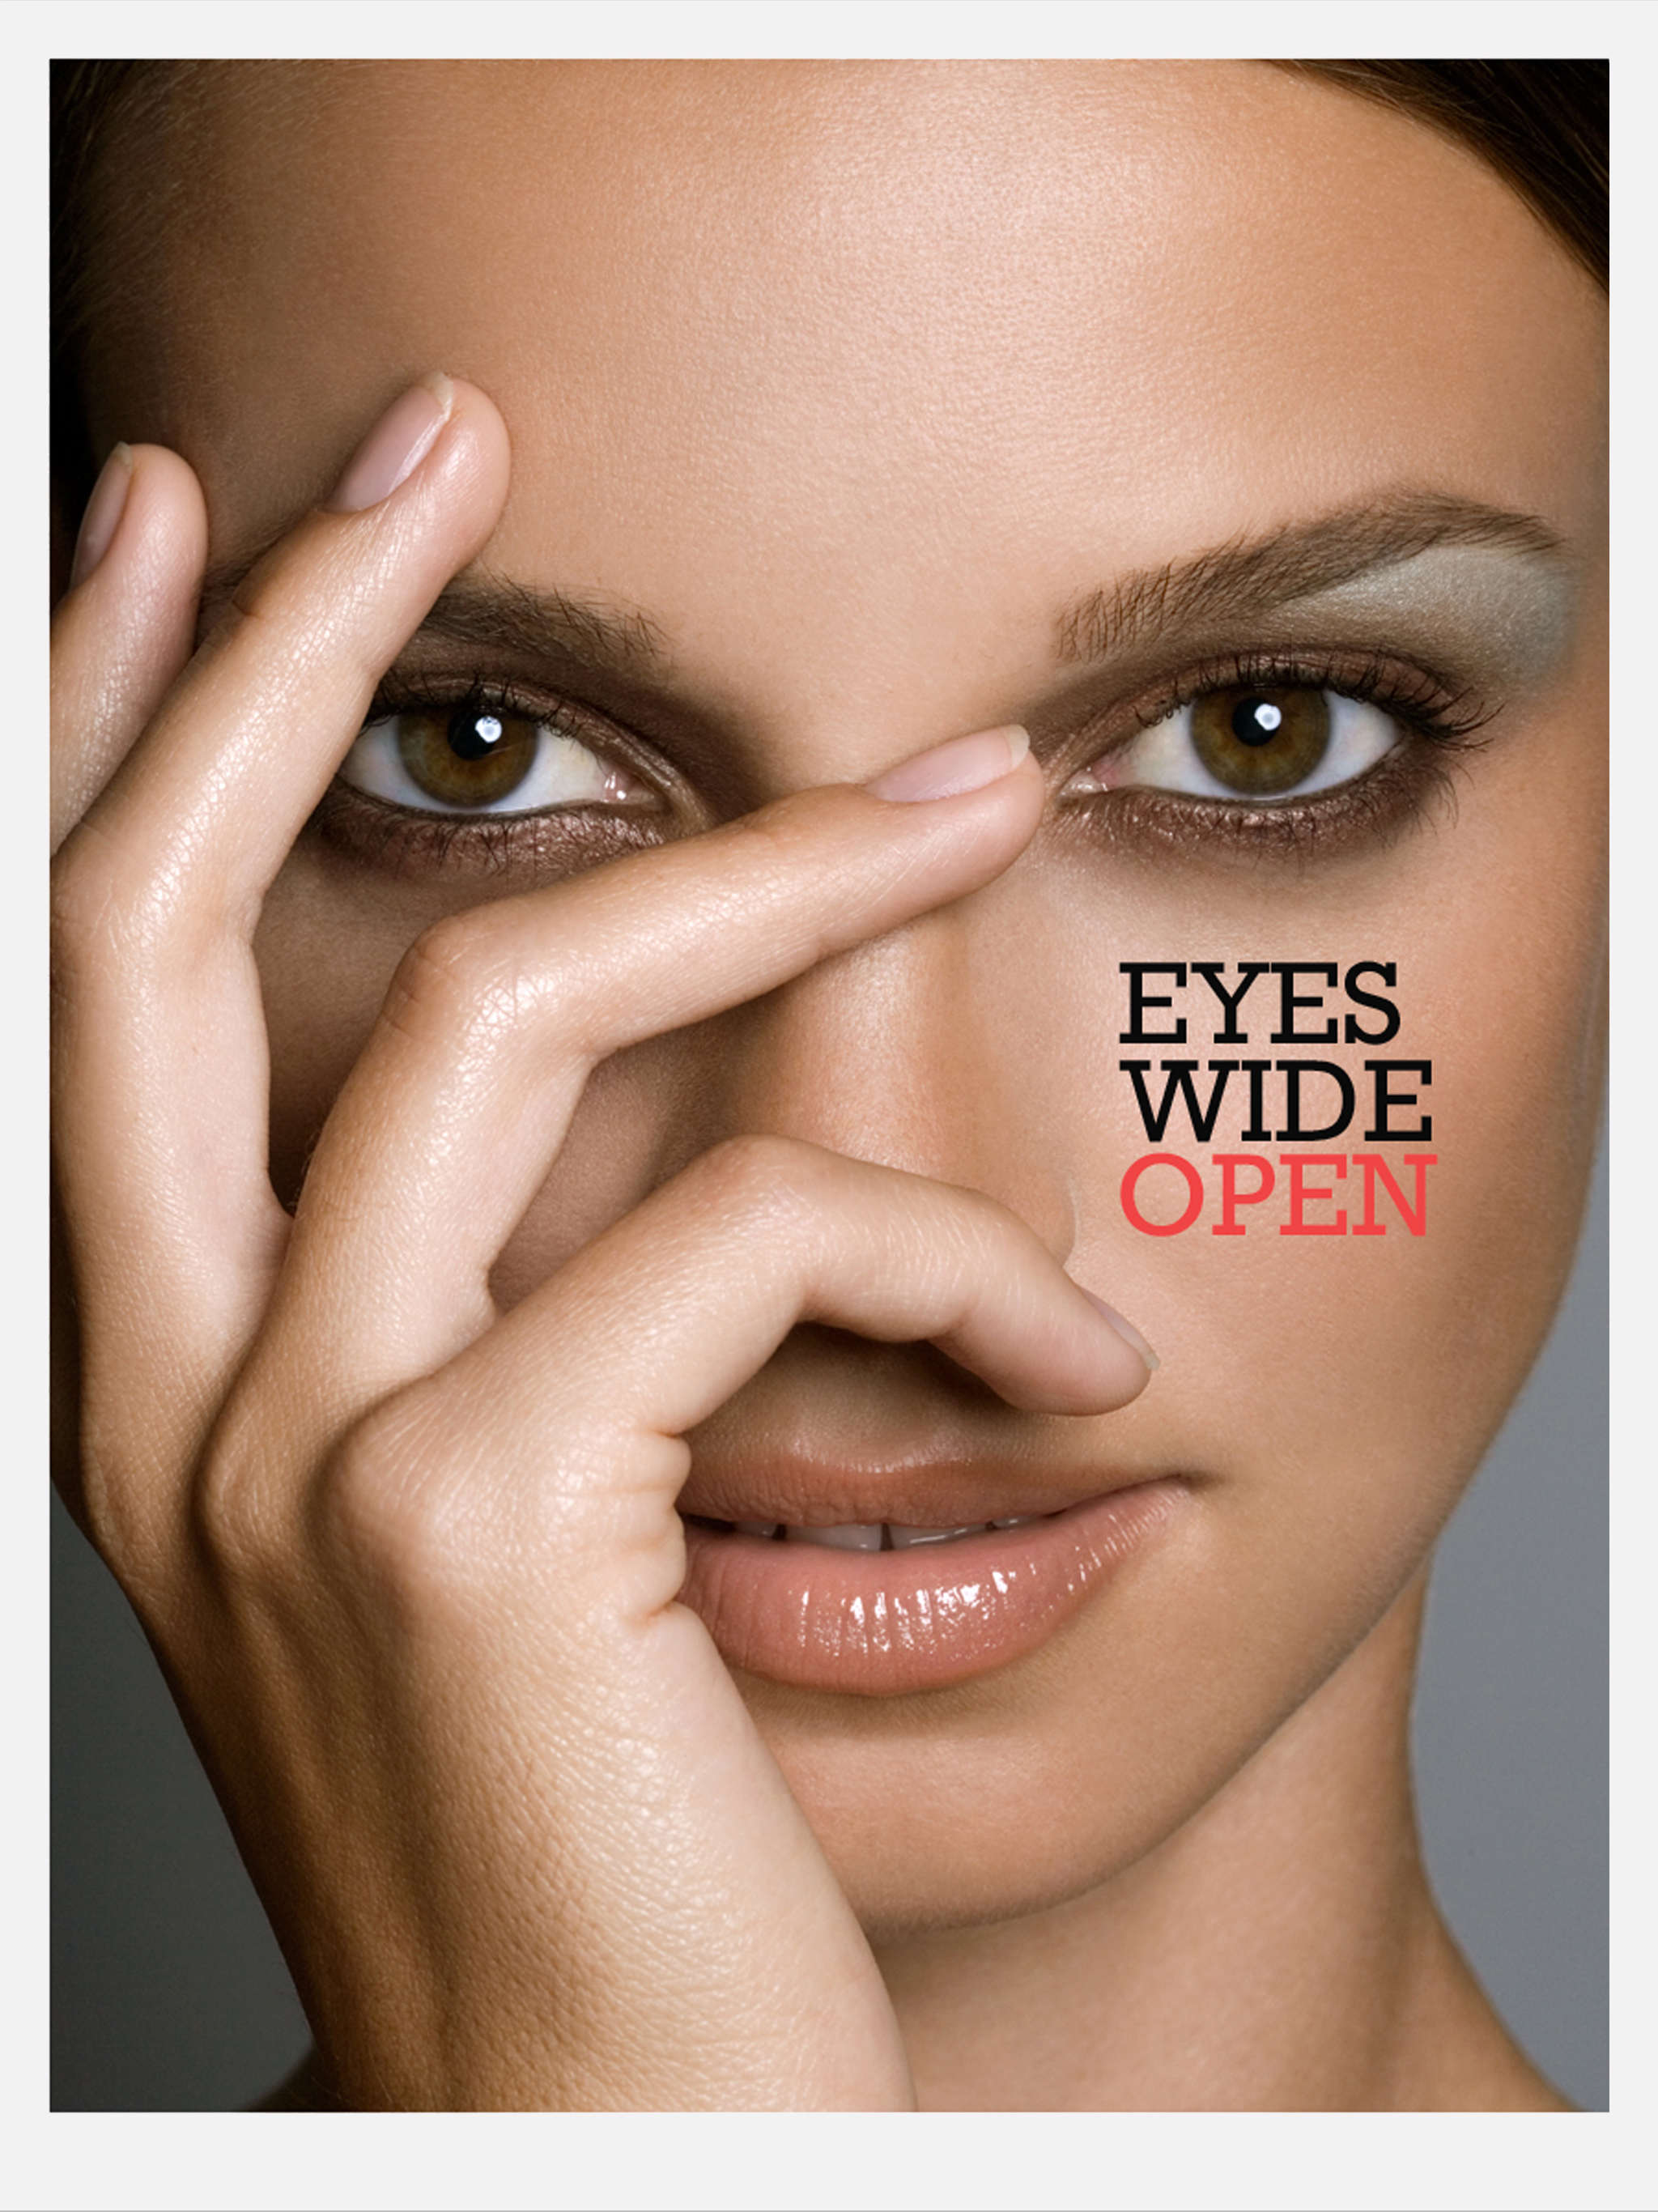 Eyes-Wide-Open-(C-Mag).jpg